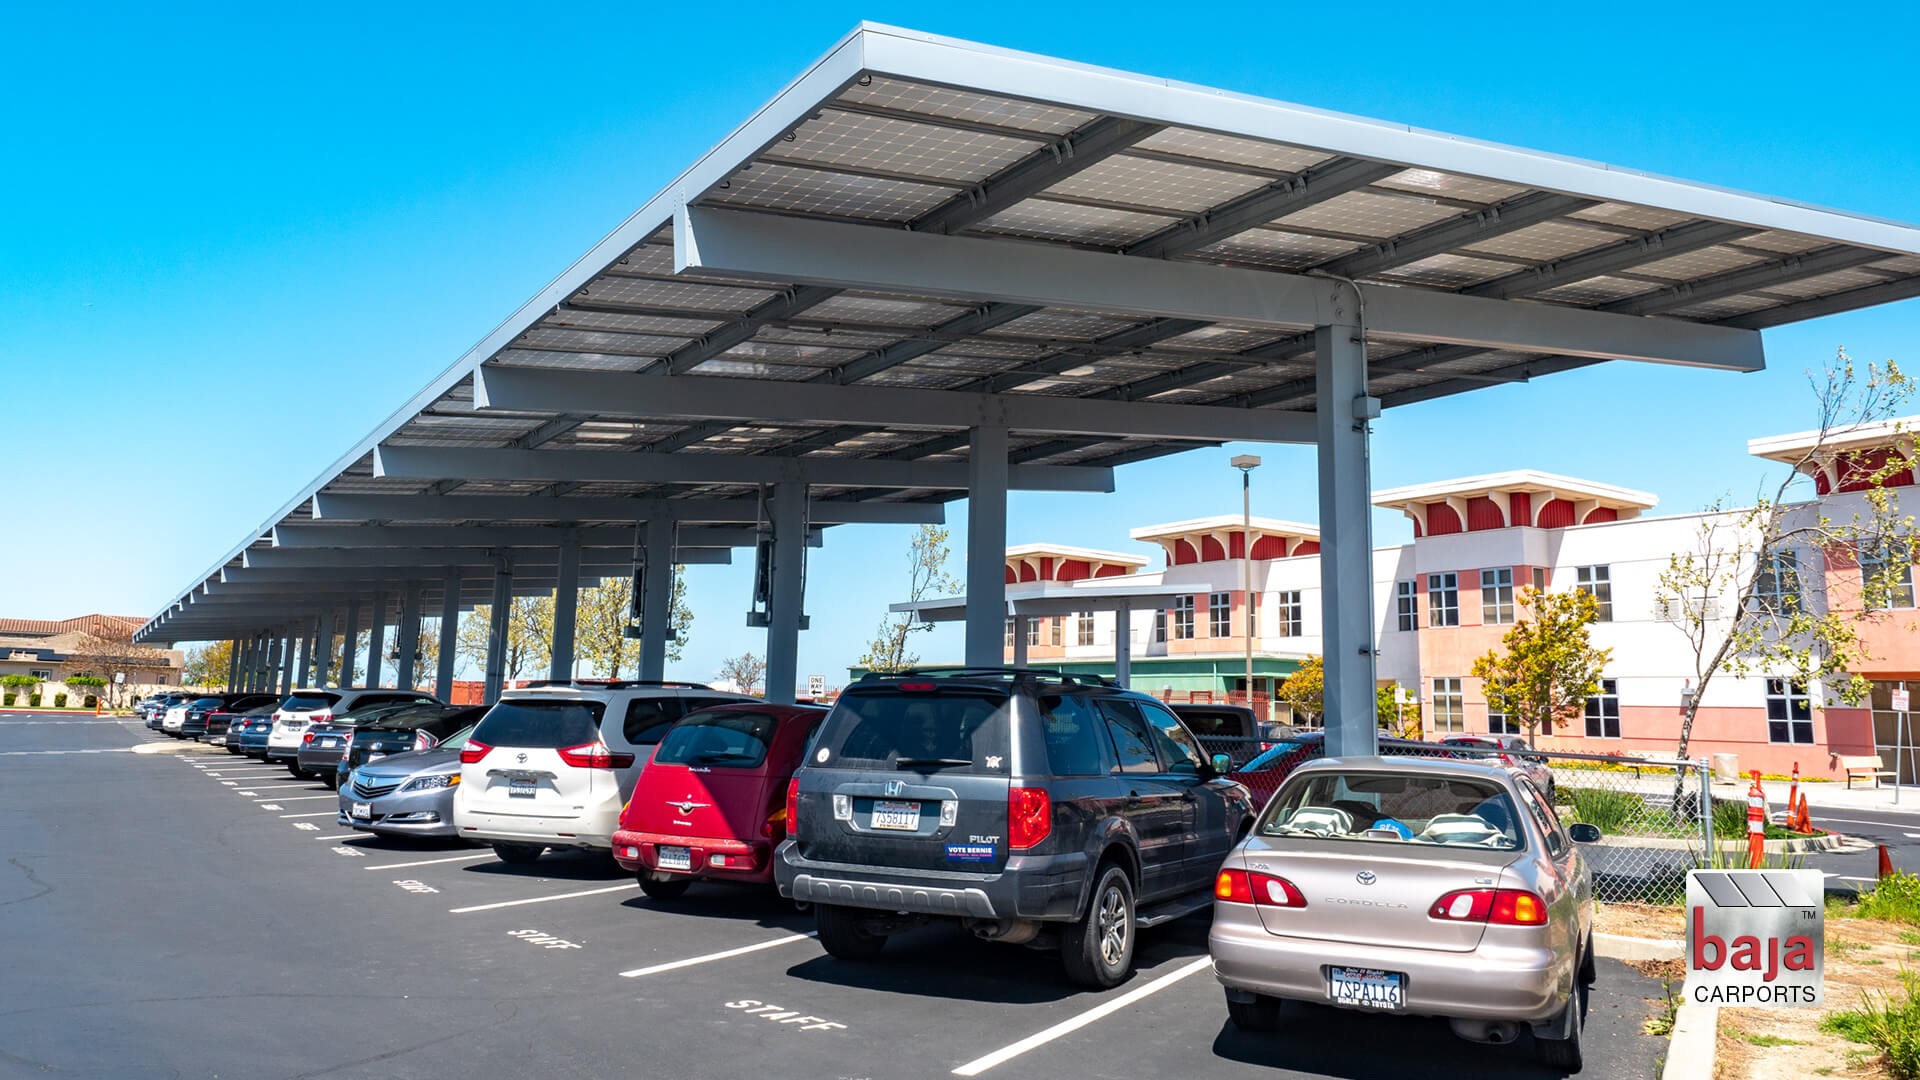 solar carports help delaine elementary power their school